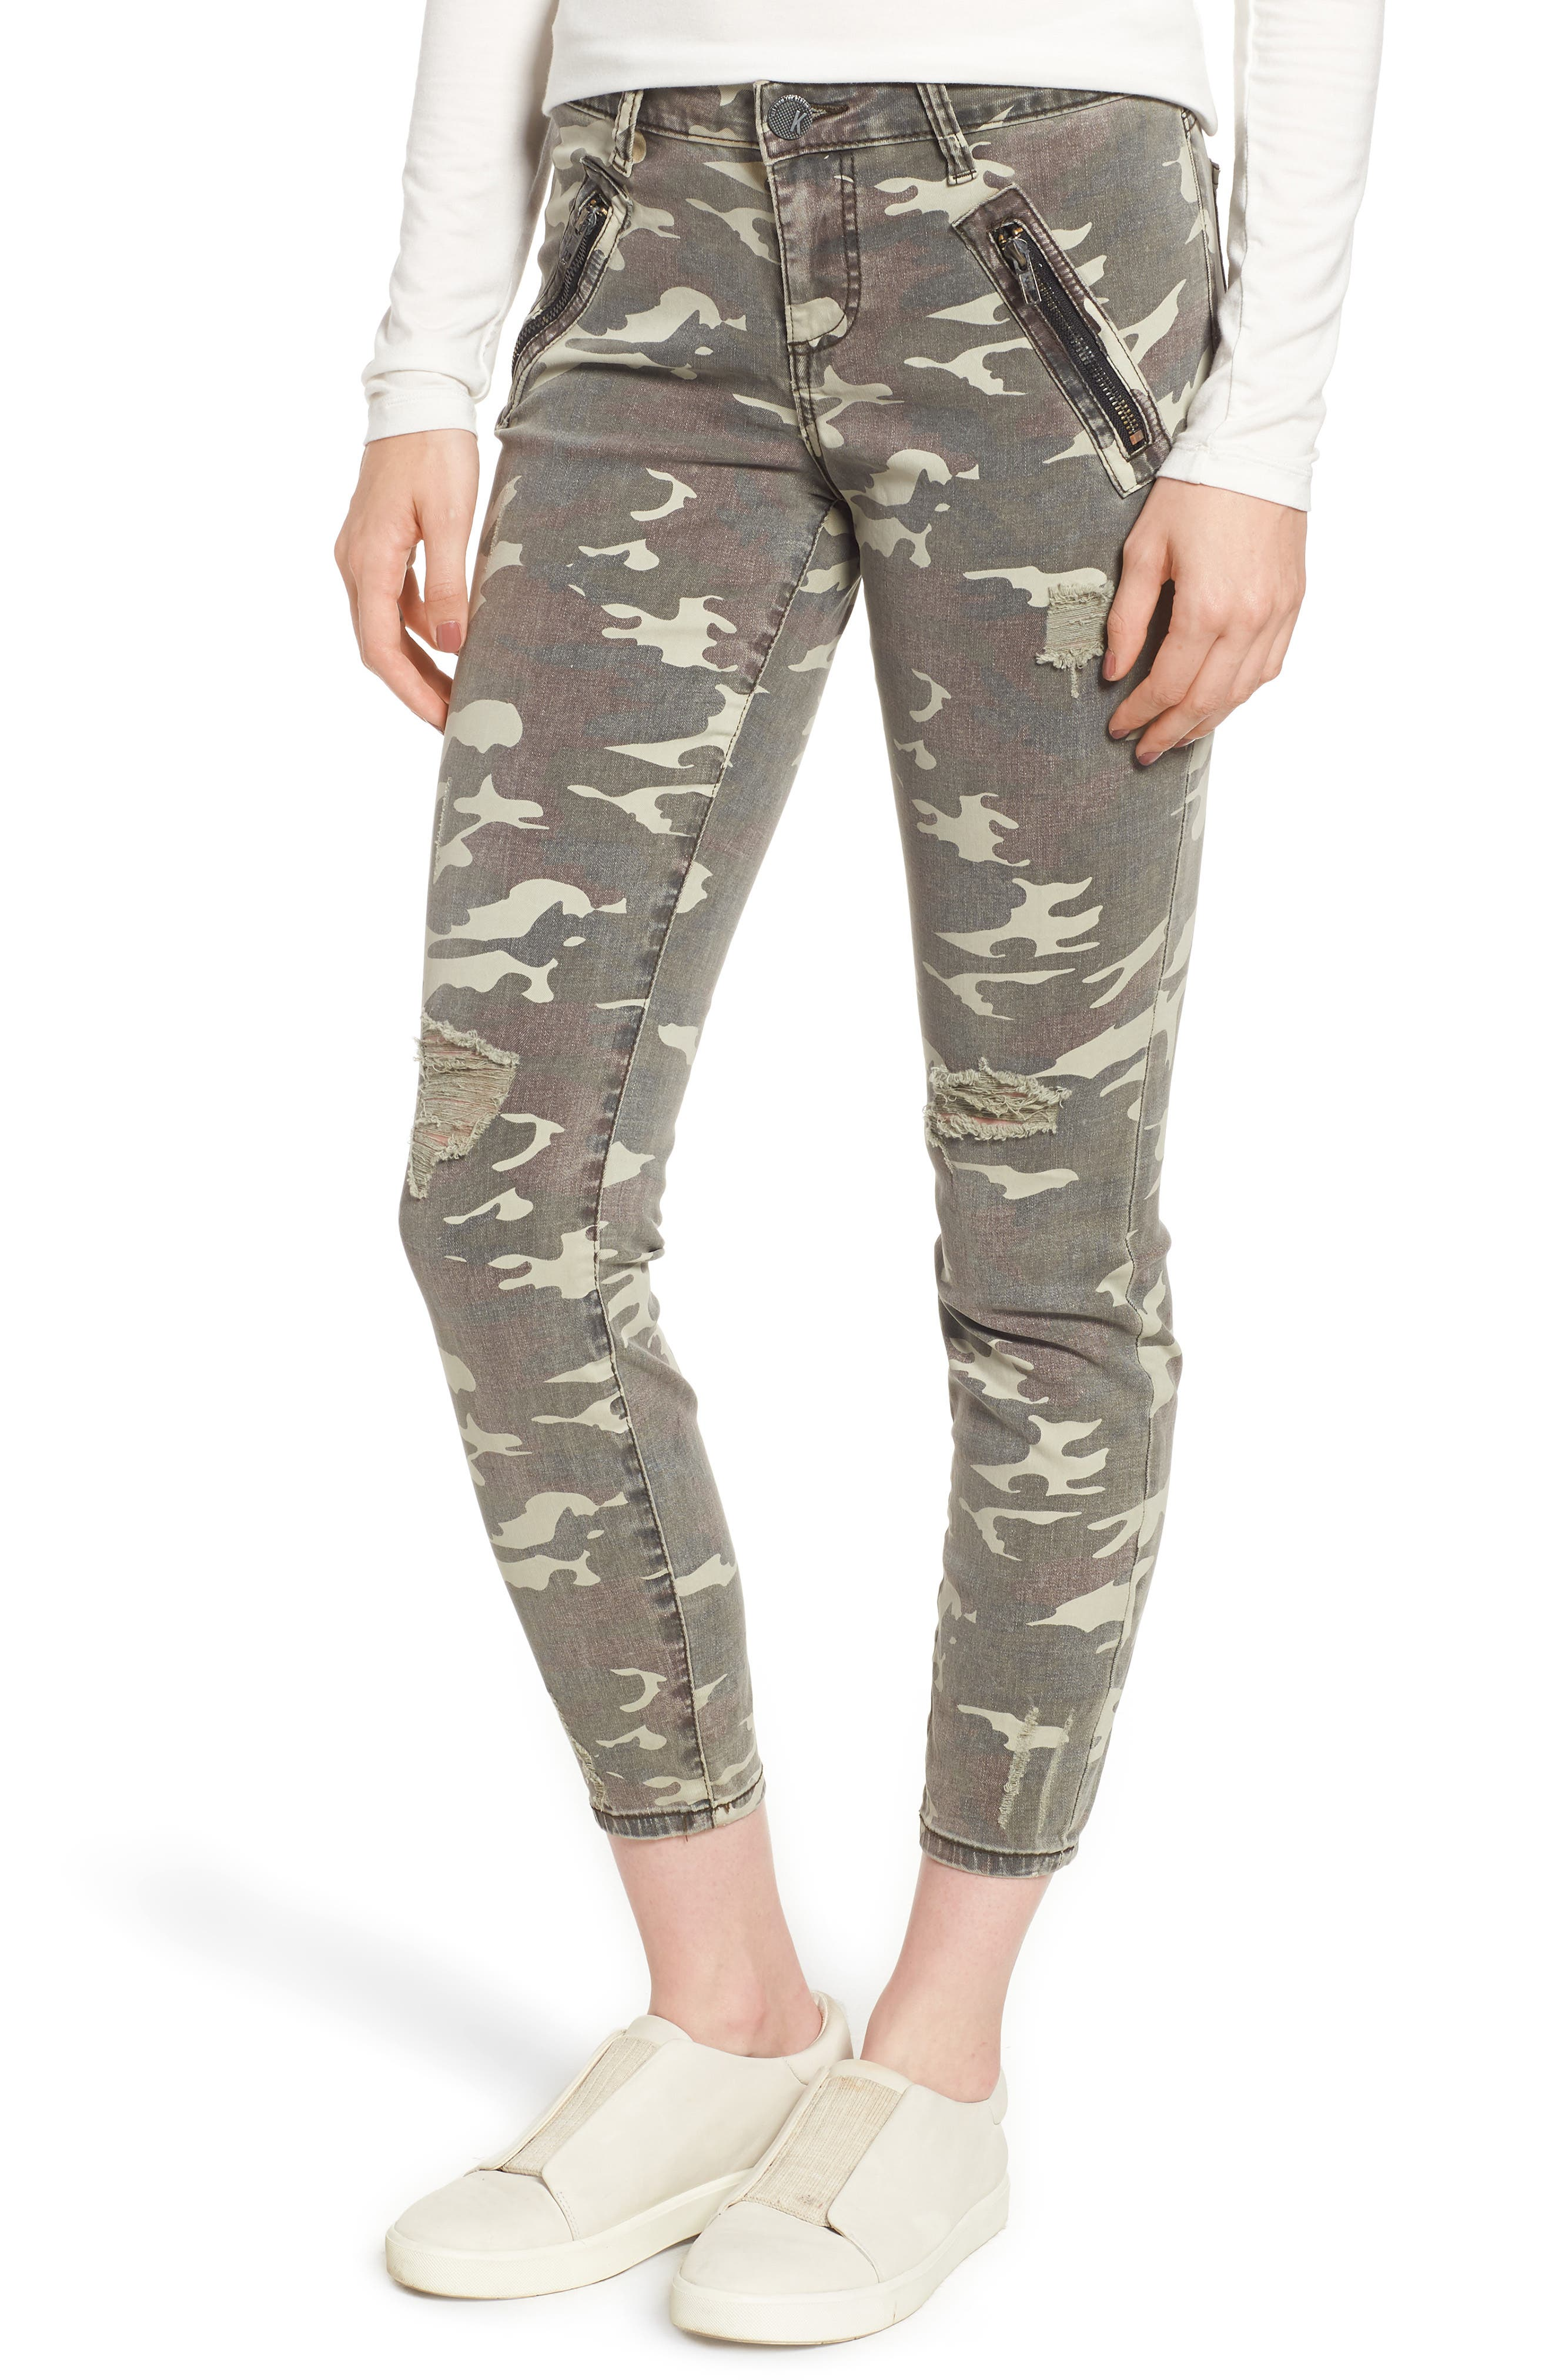 KUT FROM THE KLOTH Connie Ankle Skinny Camo Jeans, Main, color, 317